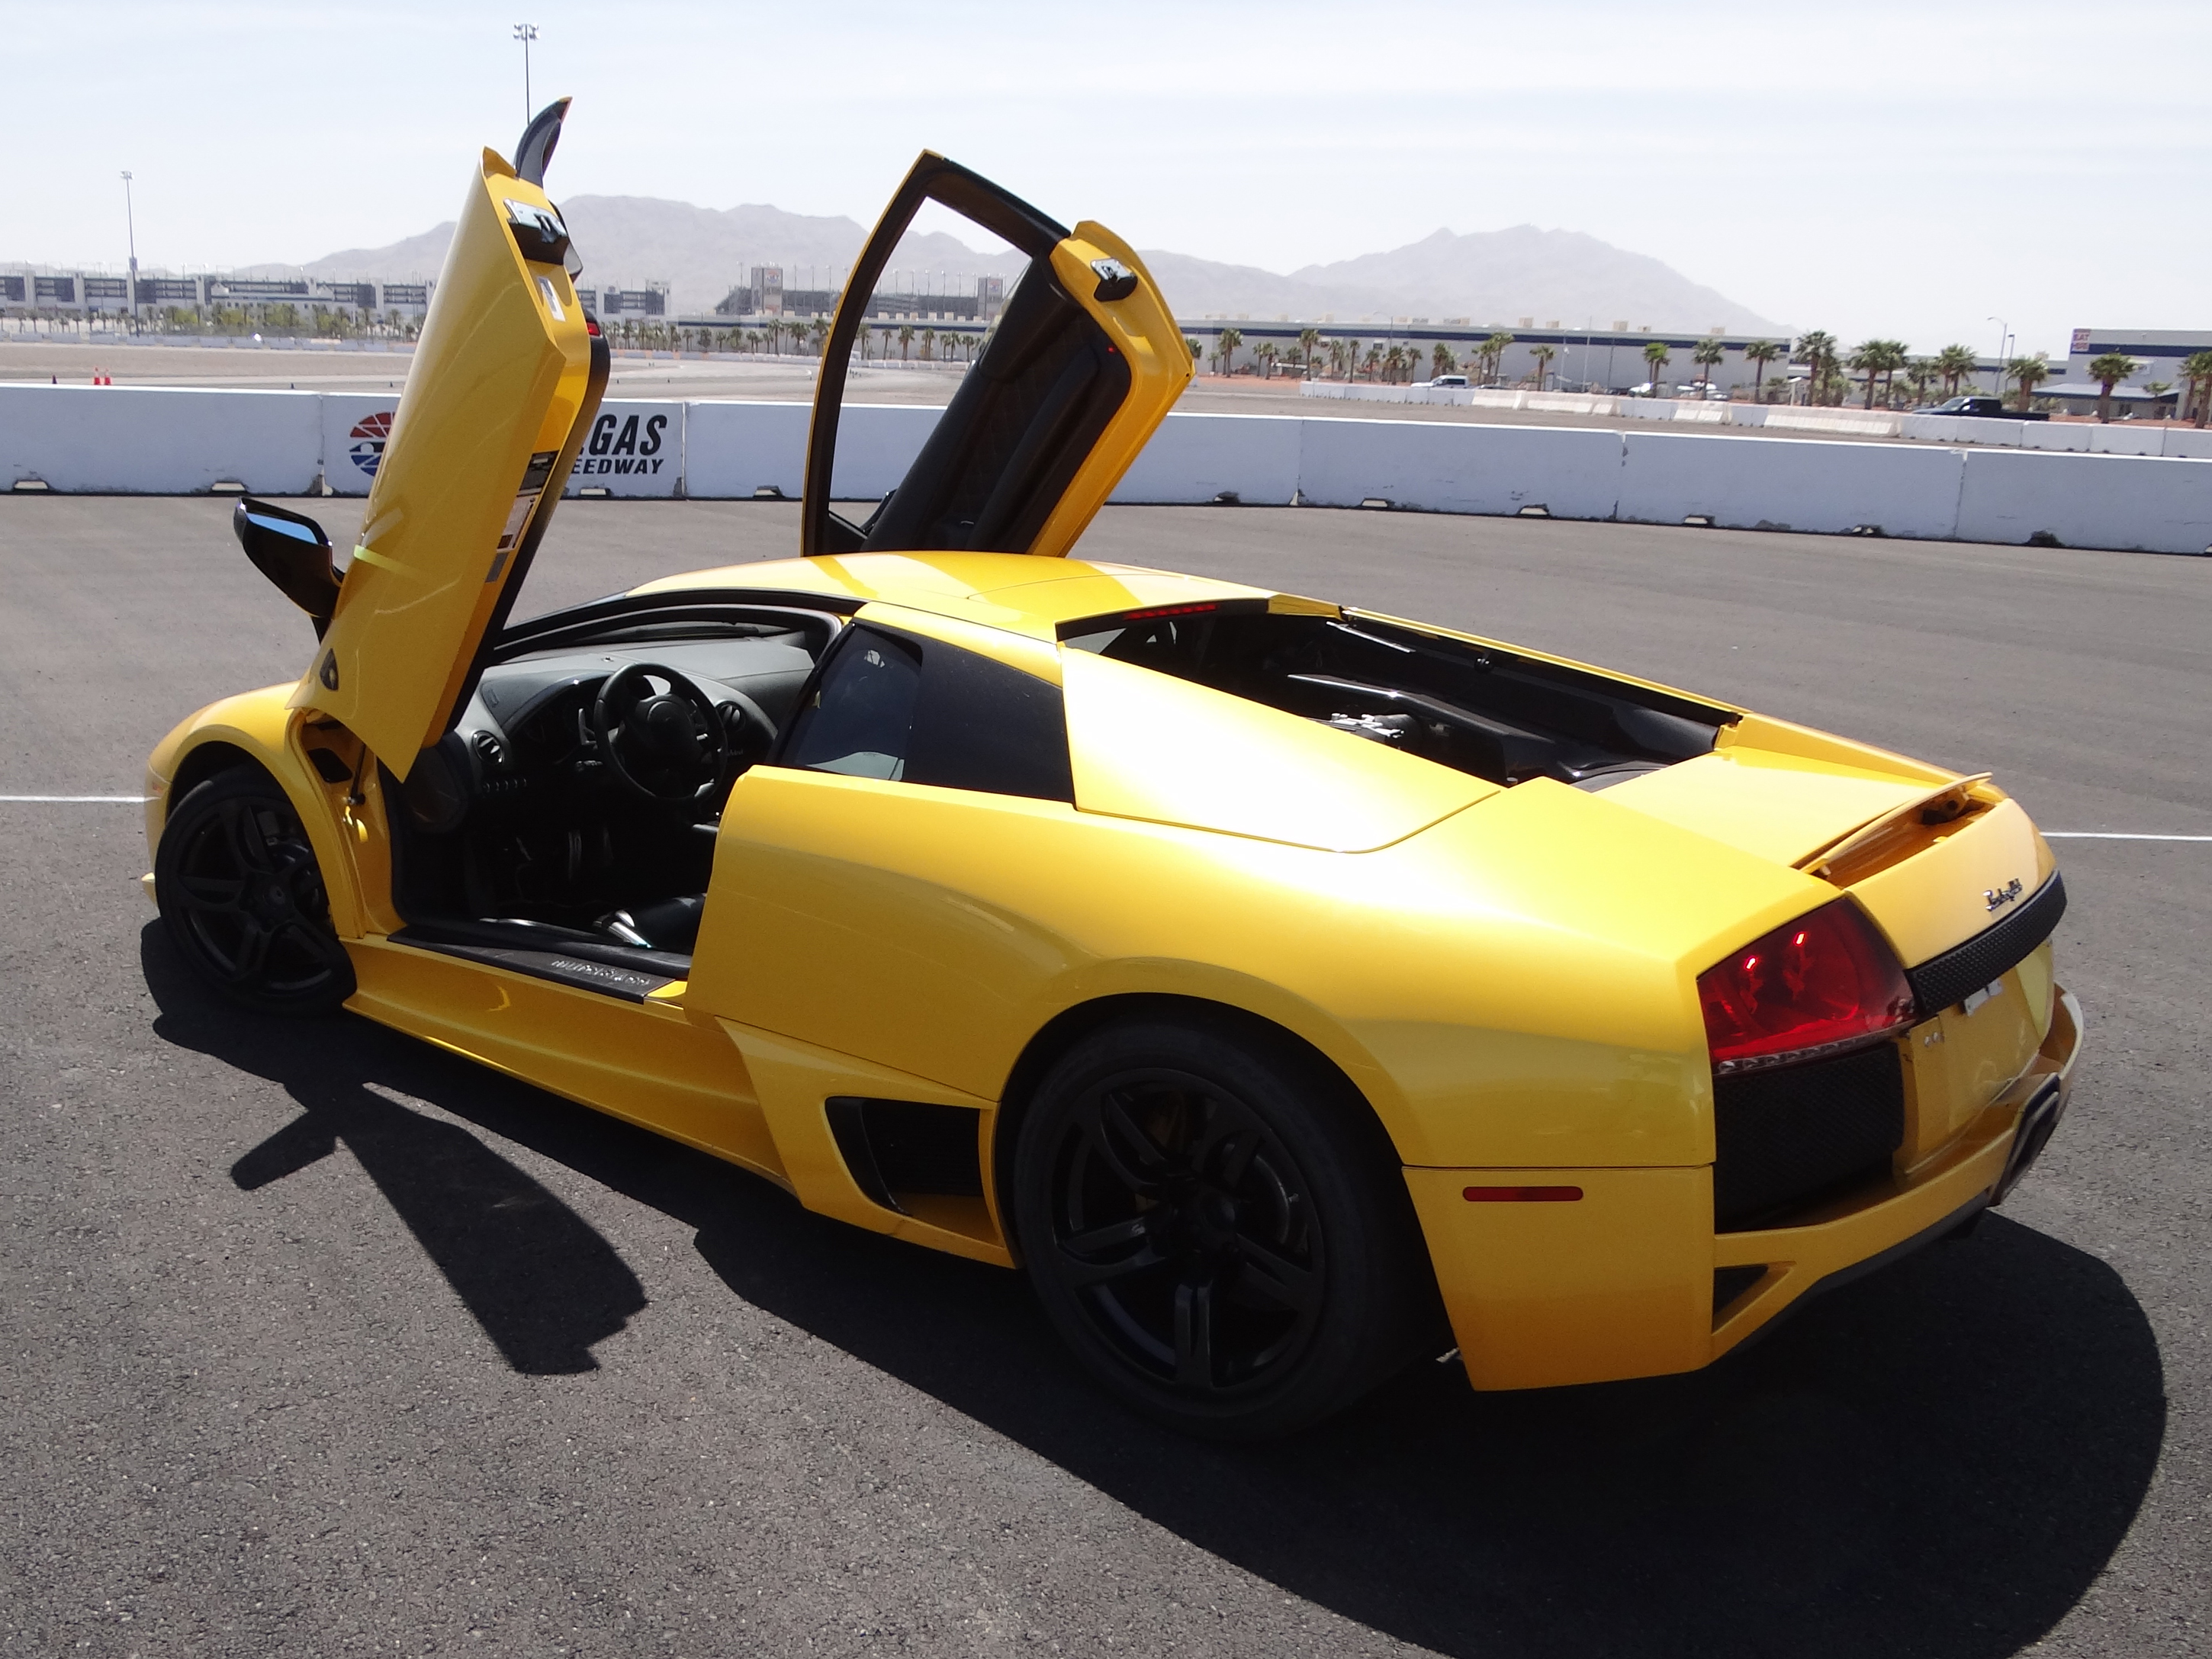 Perfect Leaselamborghini On Rent A Lamborghini In Las Vegas